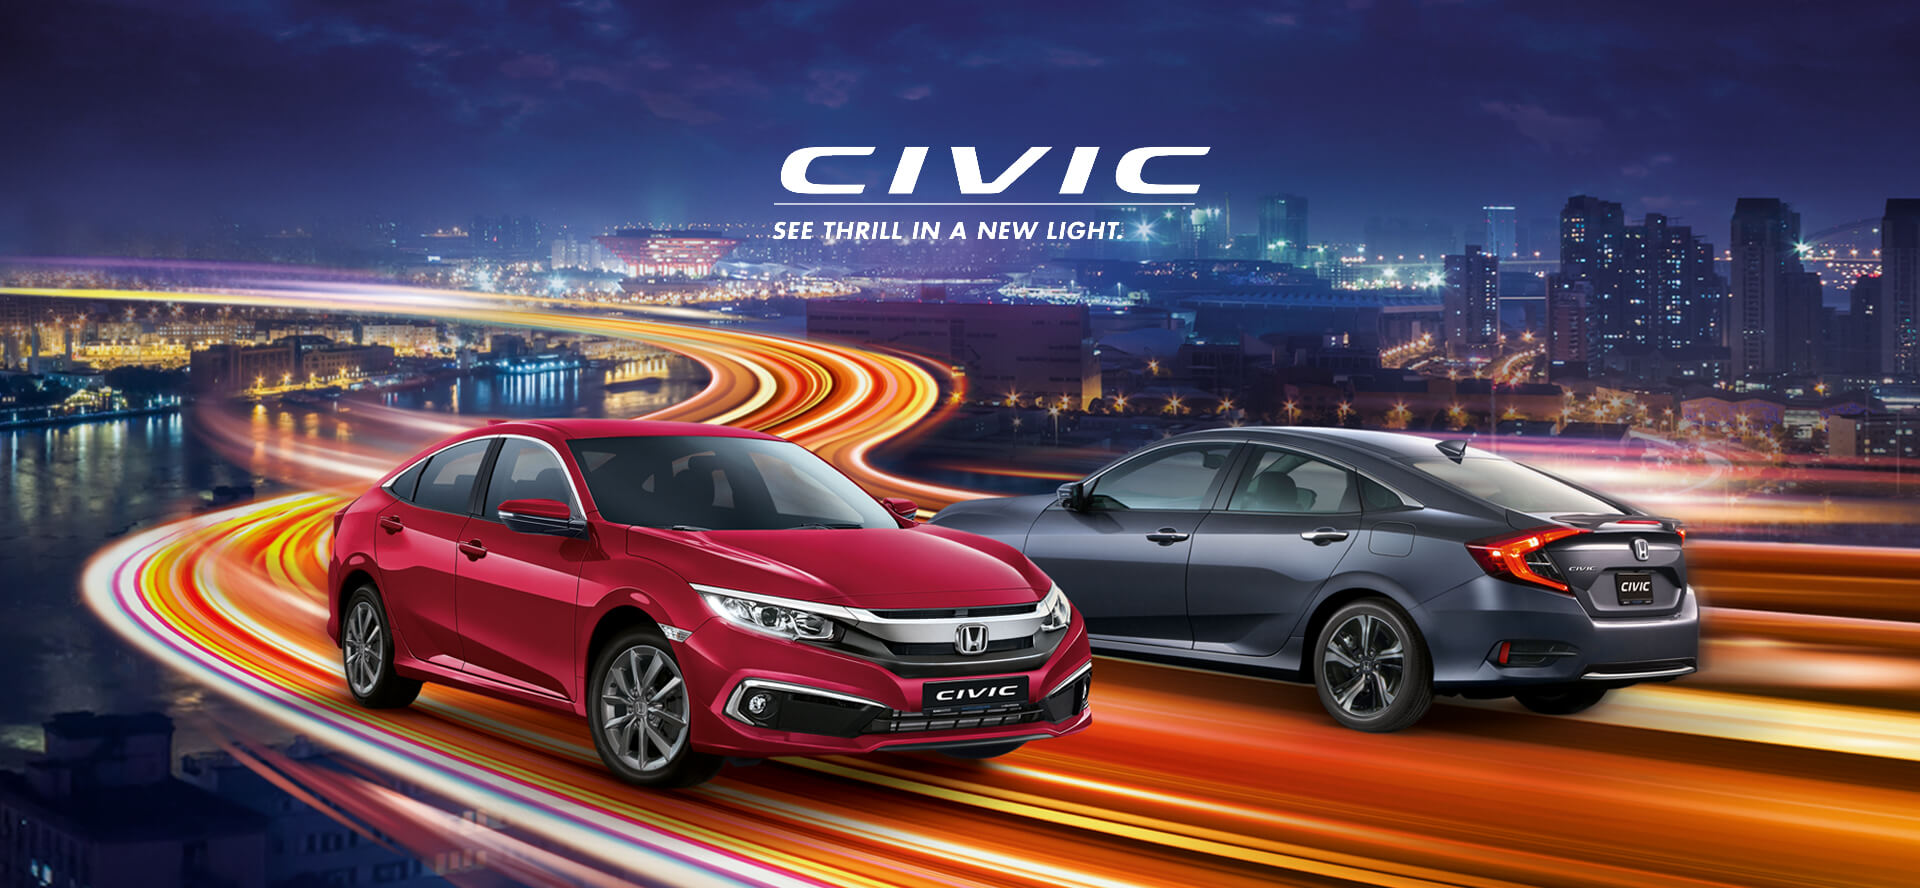 Civic_Revised_KV Honda Civic